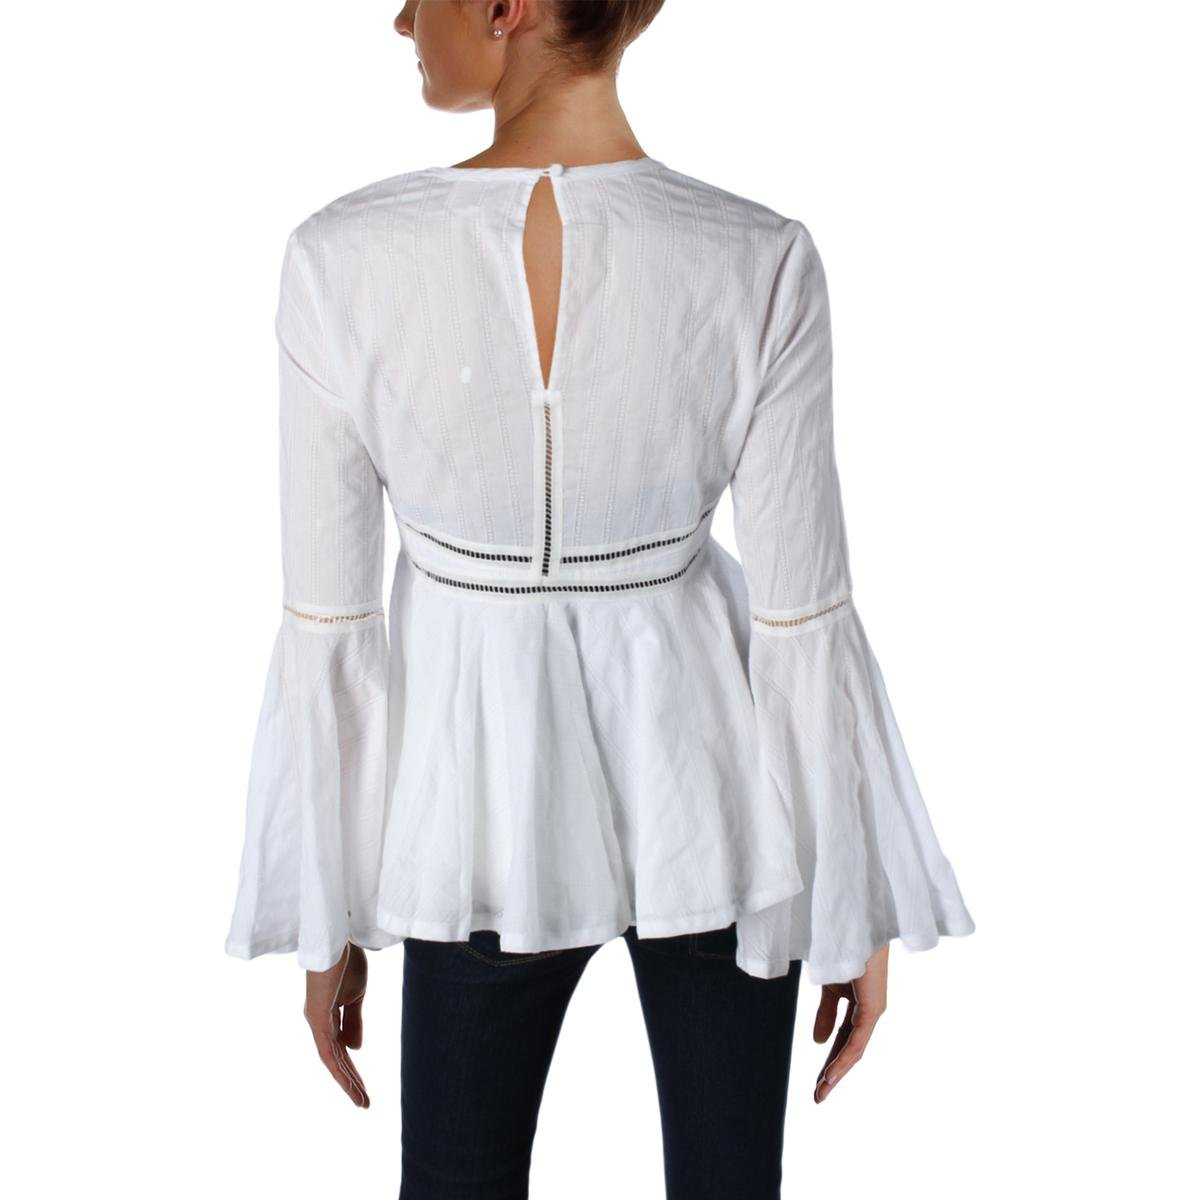 Cinq a Sept Womens Marseille Poplin Bell Sleeves Peplum Top White XS by Cinq a Sept (Image #2)